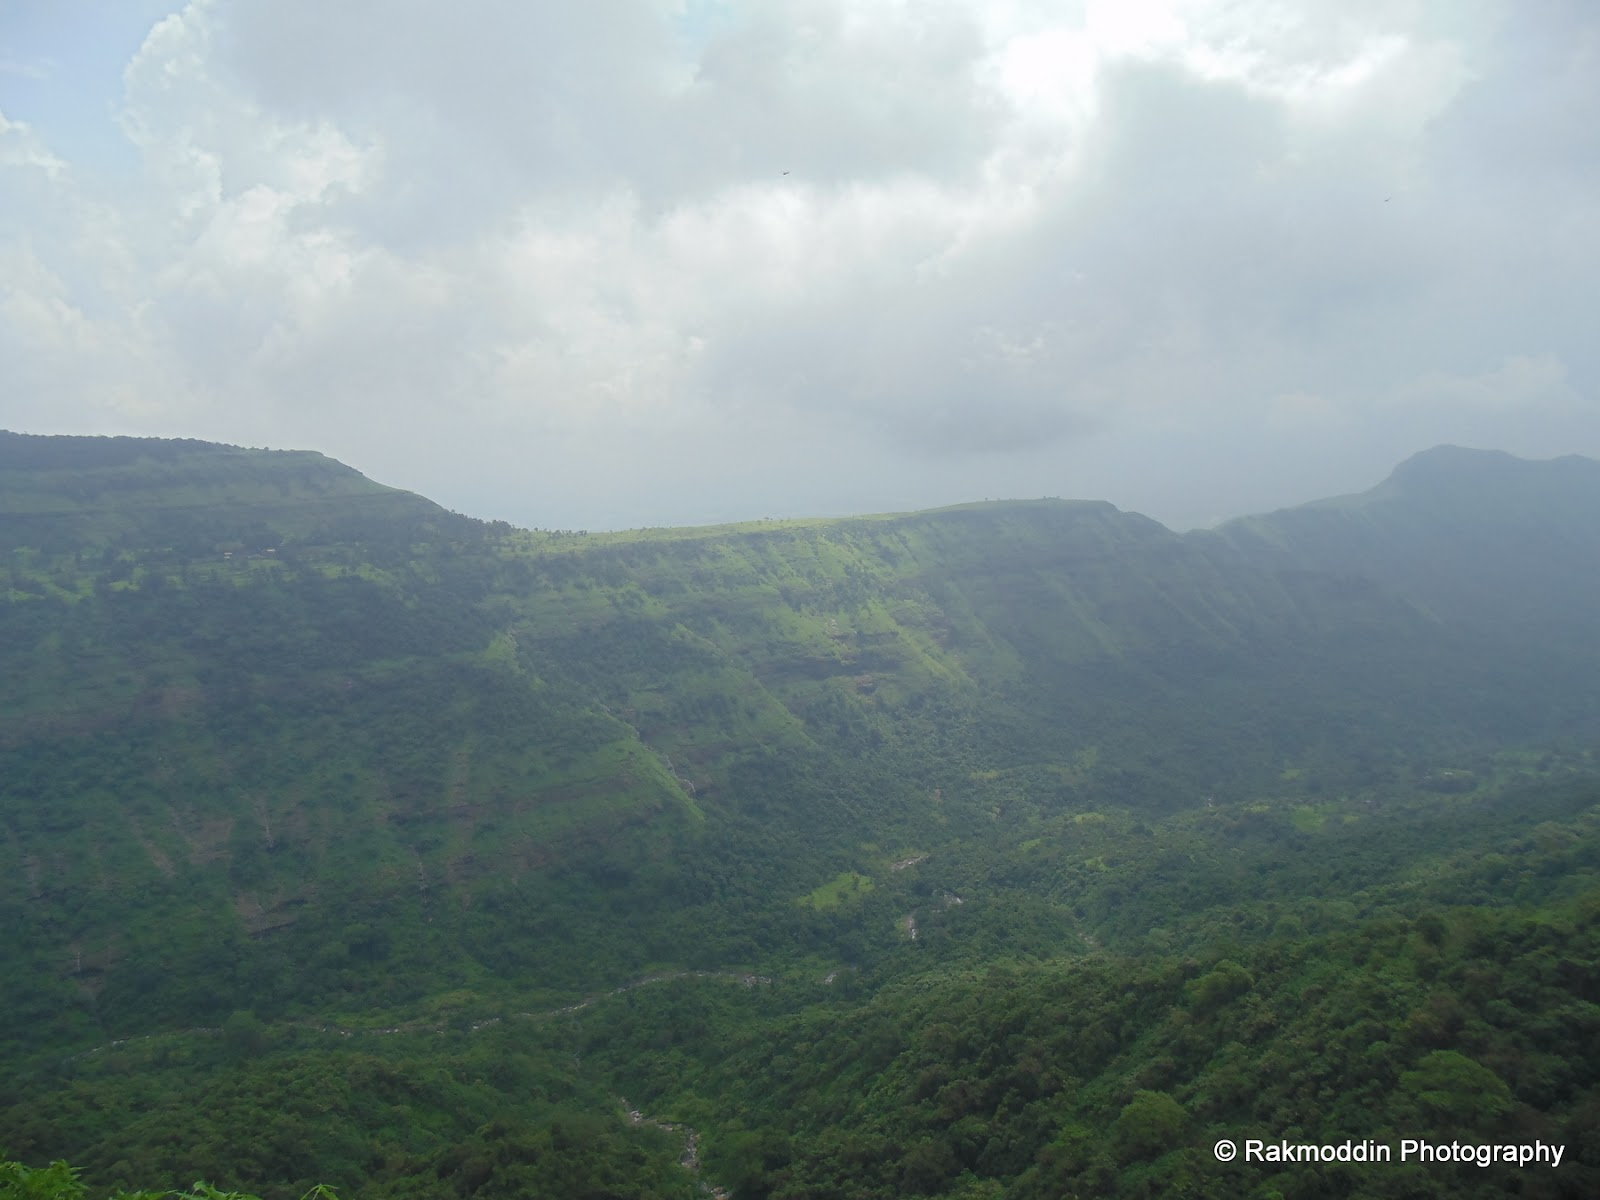 Khandala Point - A Langurs point in Matheran Hill Station